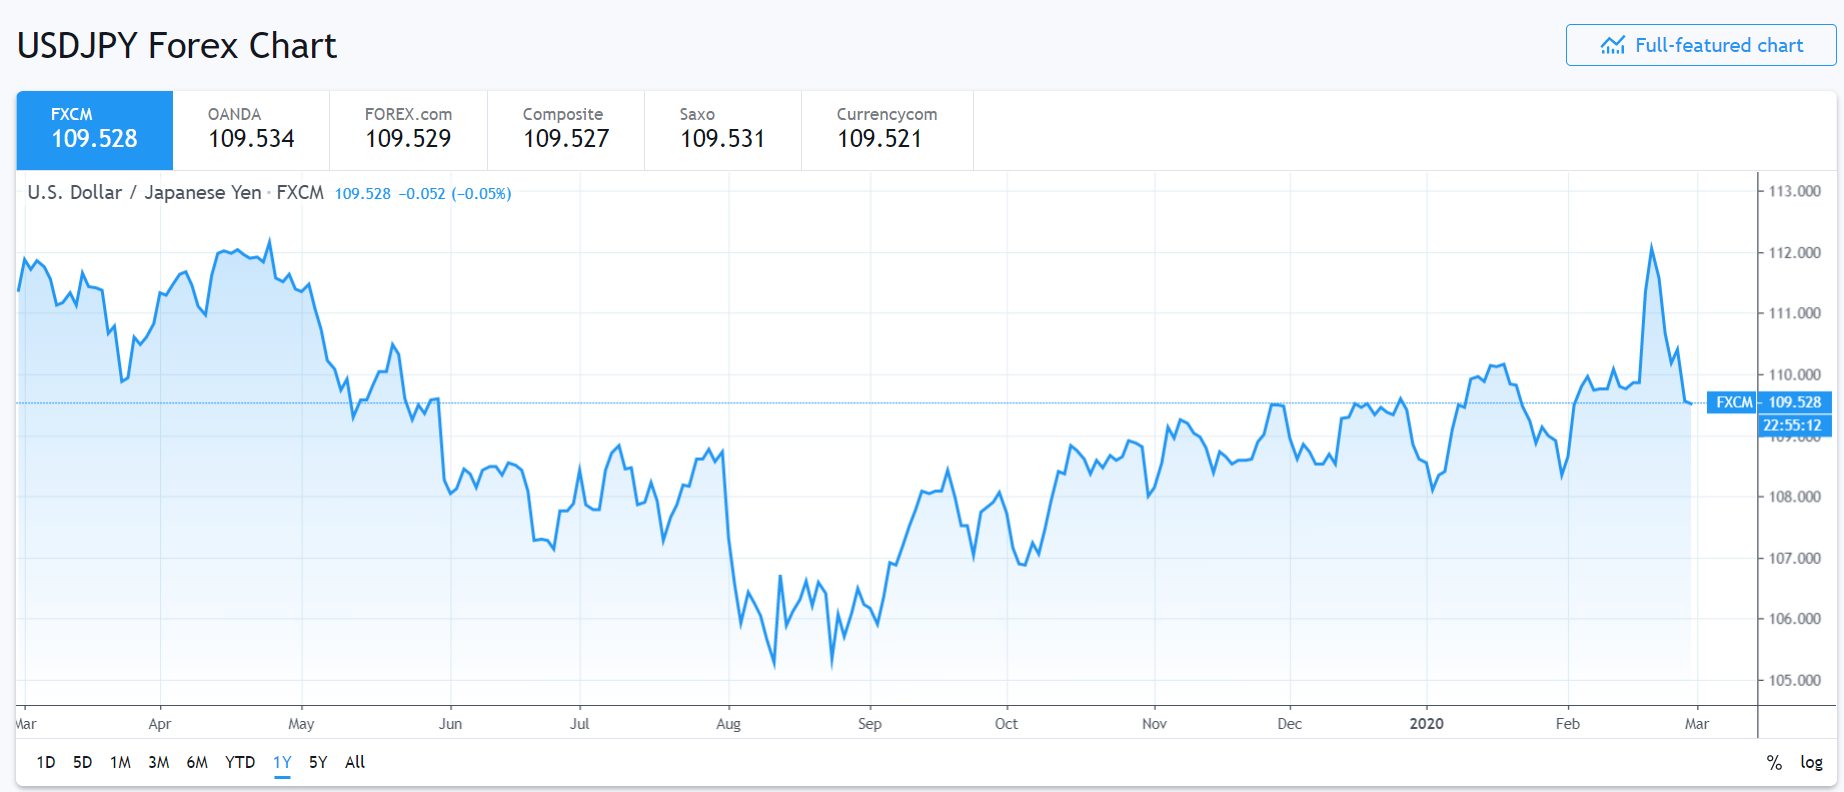 USD JPY CHART - 1Y - FXCM Trading View - 28 February 2020